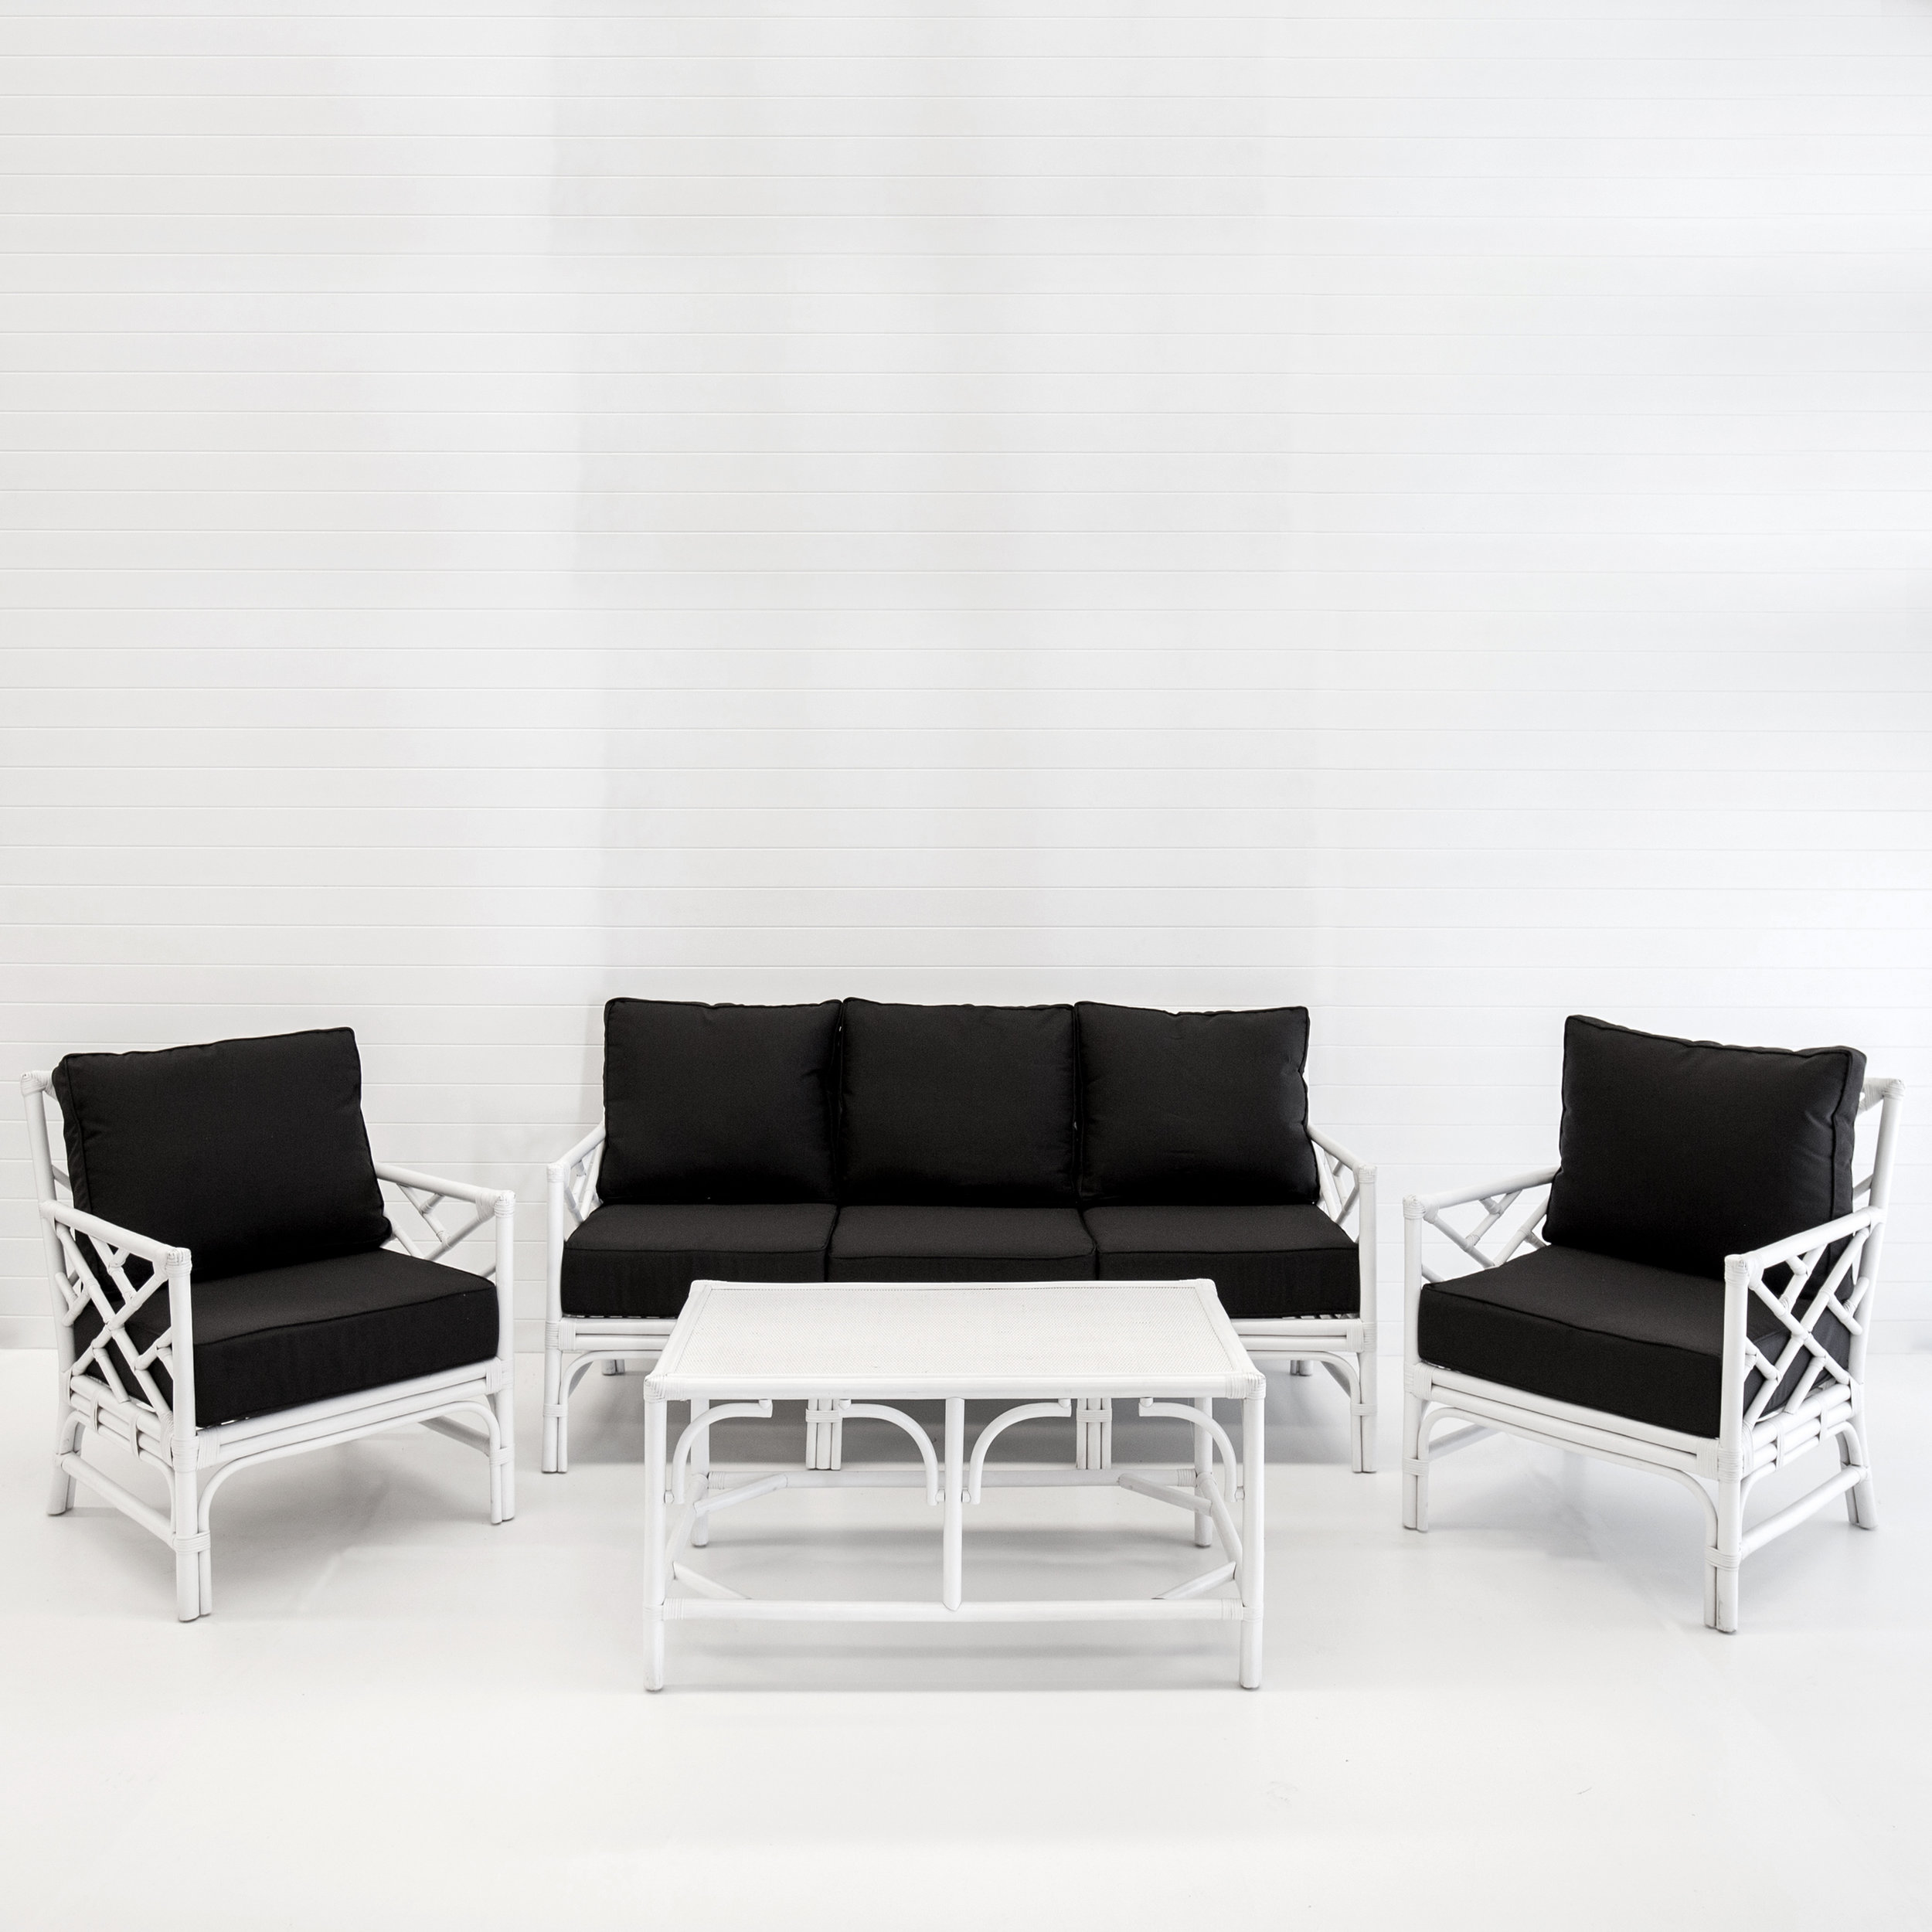 Hamptons white sofa package with black cushions